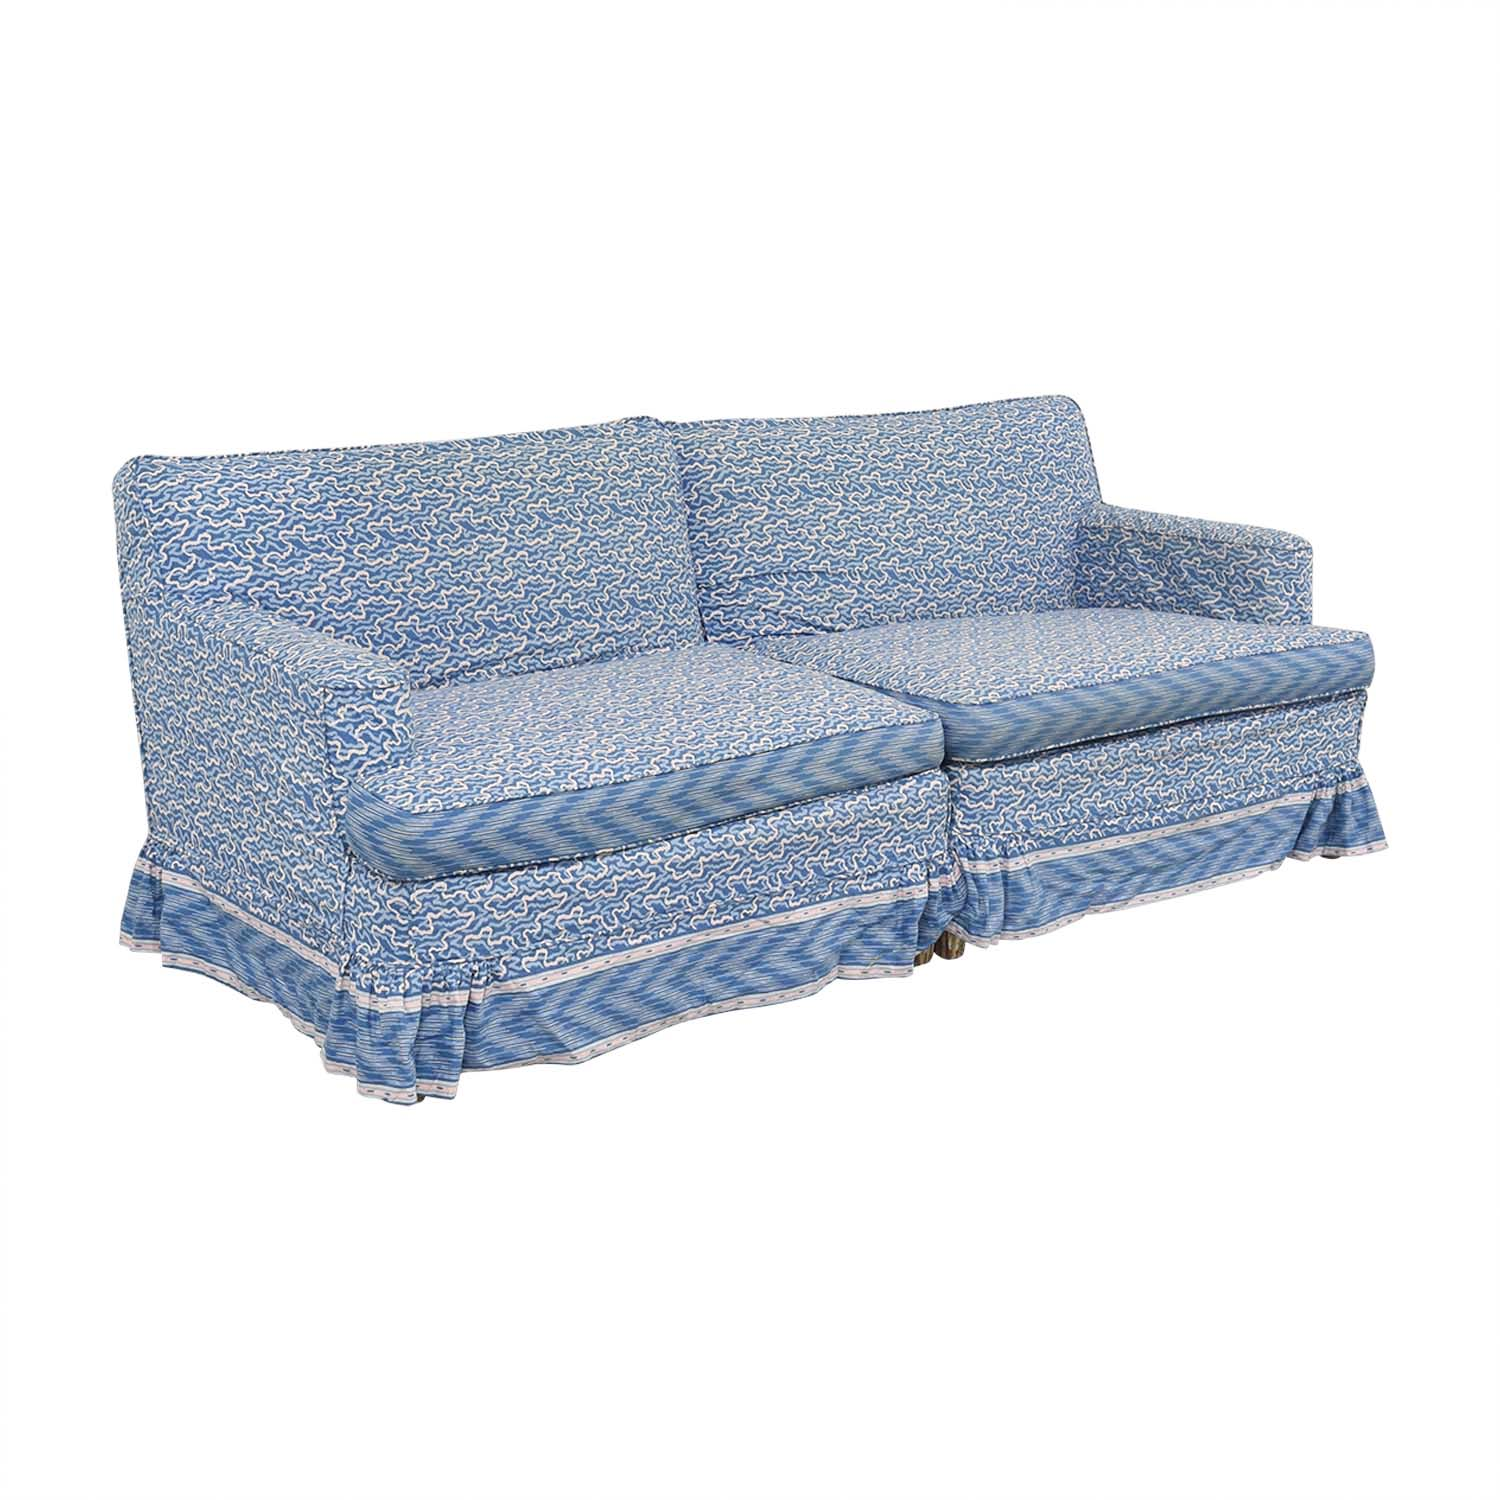 Blue And White Custom Upholstered Couch / Sofas